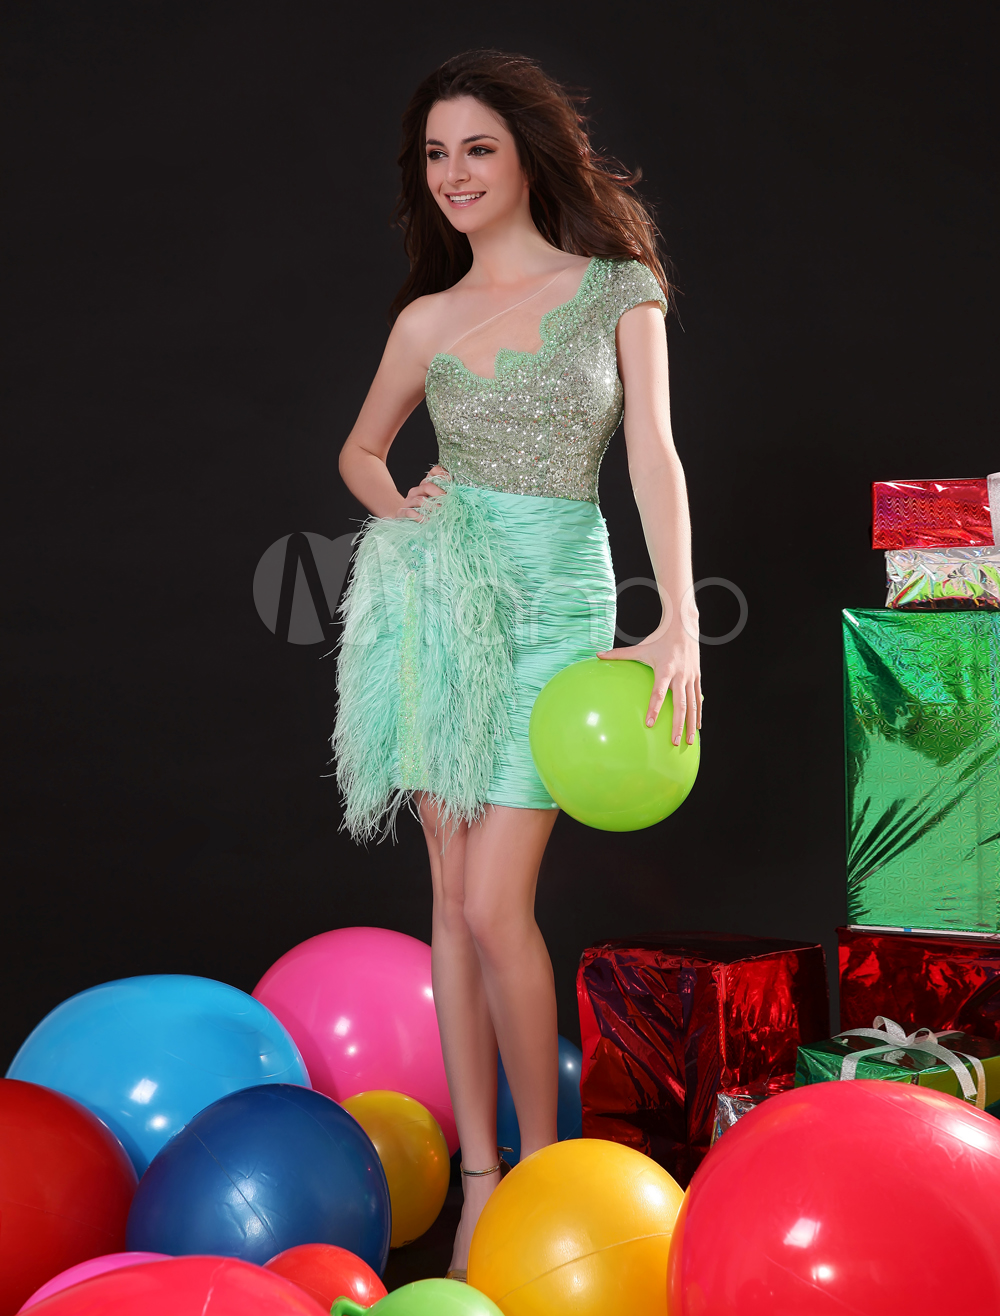 Short Prom Dress Sequined One Shoulder Mint Green Party Dress Taffeta Feathers Homecoming Dress Milanoo (Wedding) photo